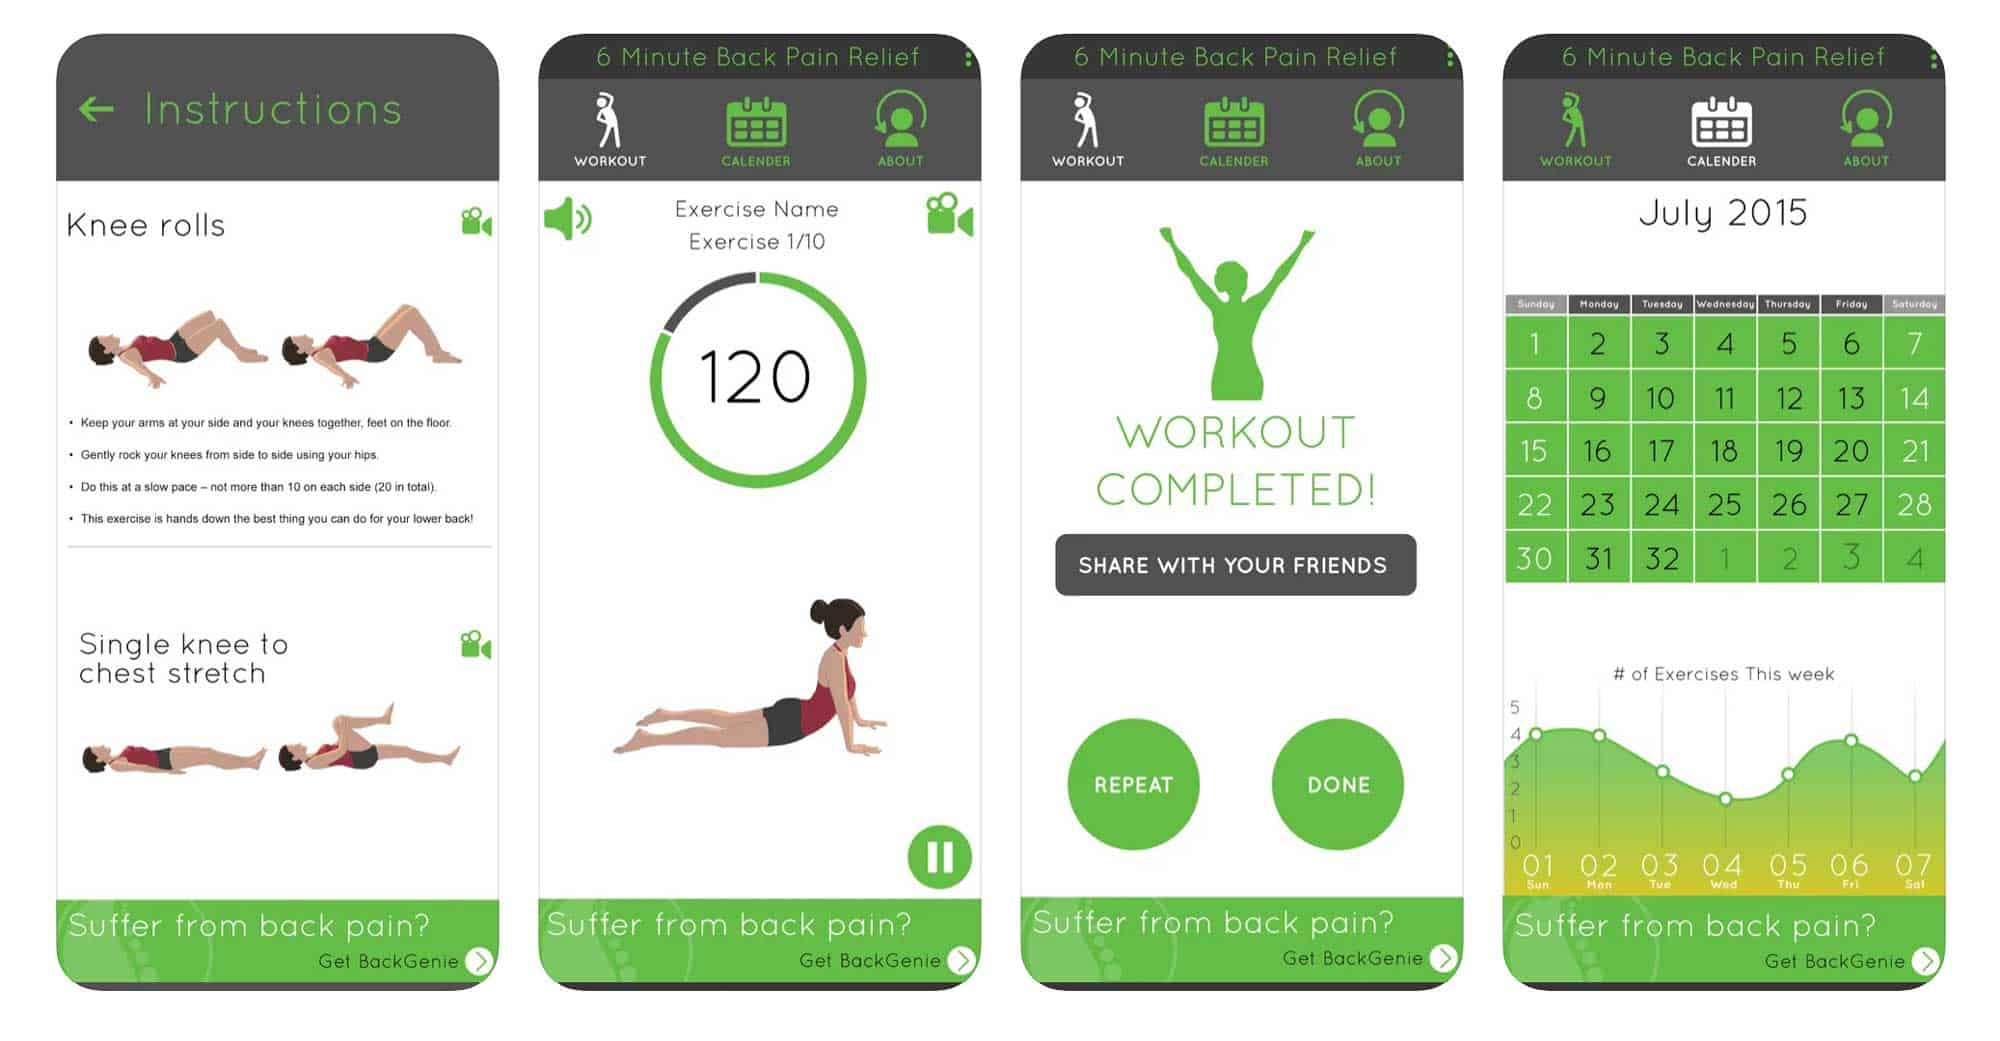 app for '6 Minute' Back Pain Relief